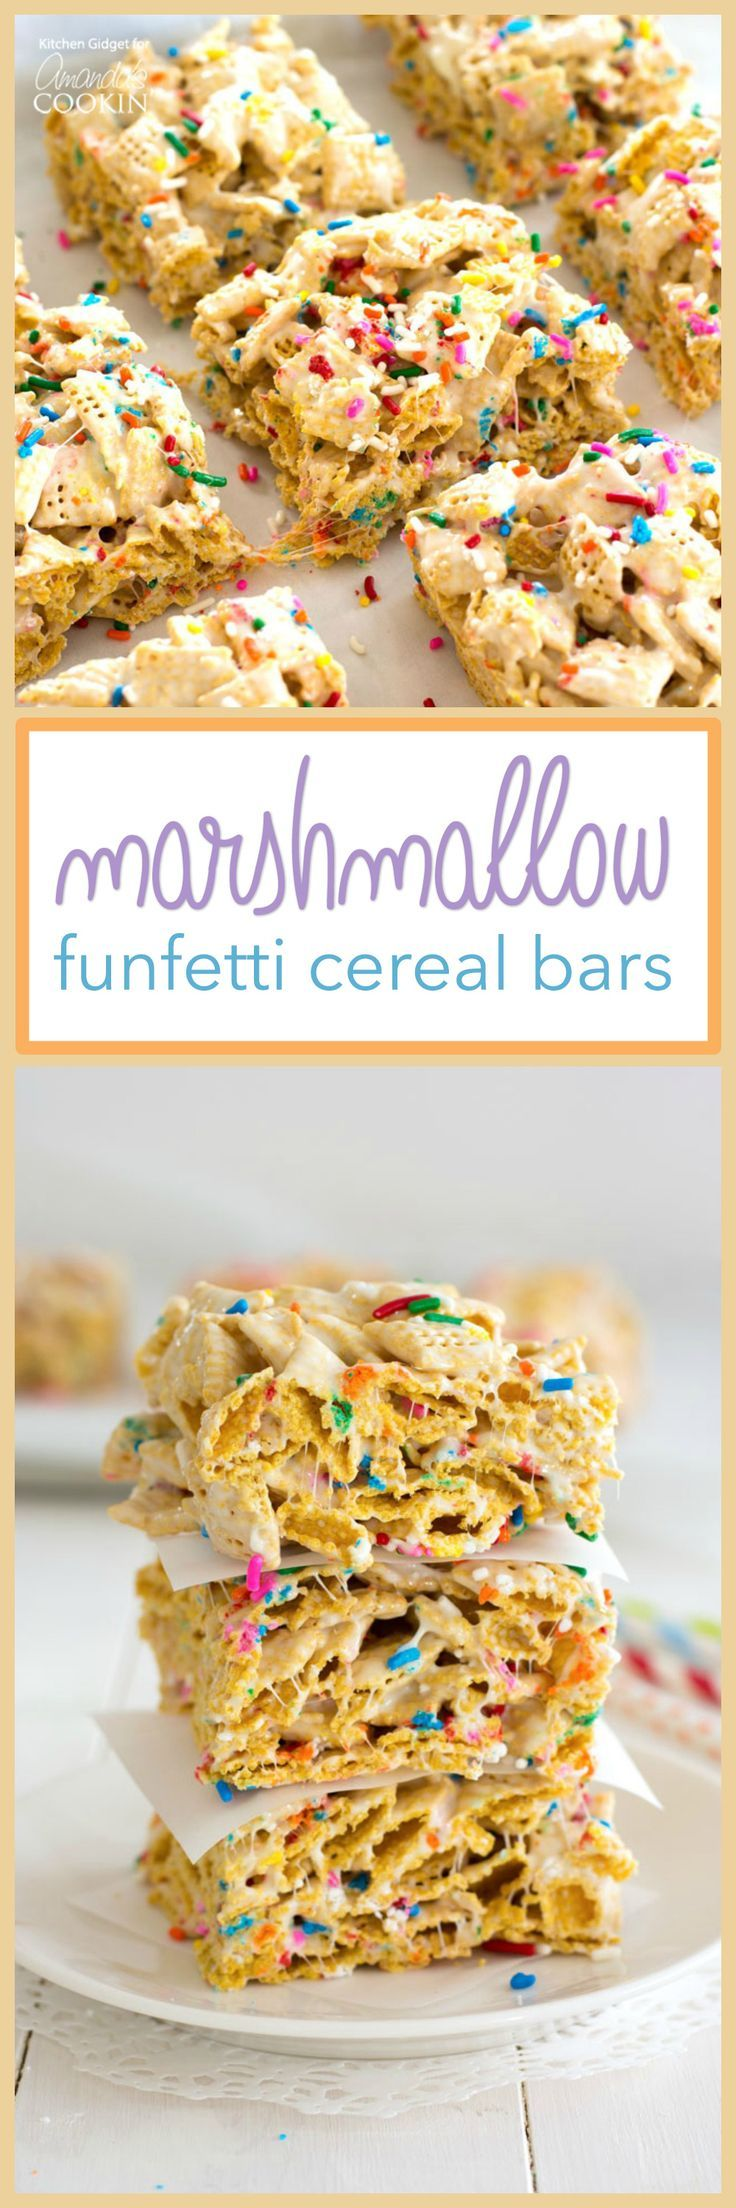 These Funfetti Marshmallow Cereal Bars are deliciously chewy & crunchy! They're the perfect treat for a birthday party, but truly great just about anytime!